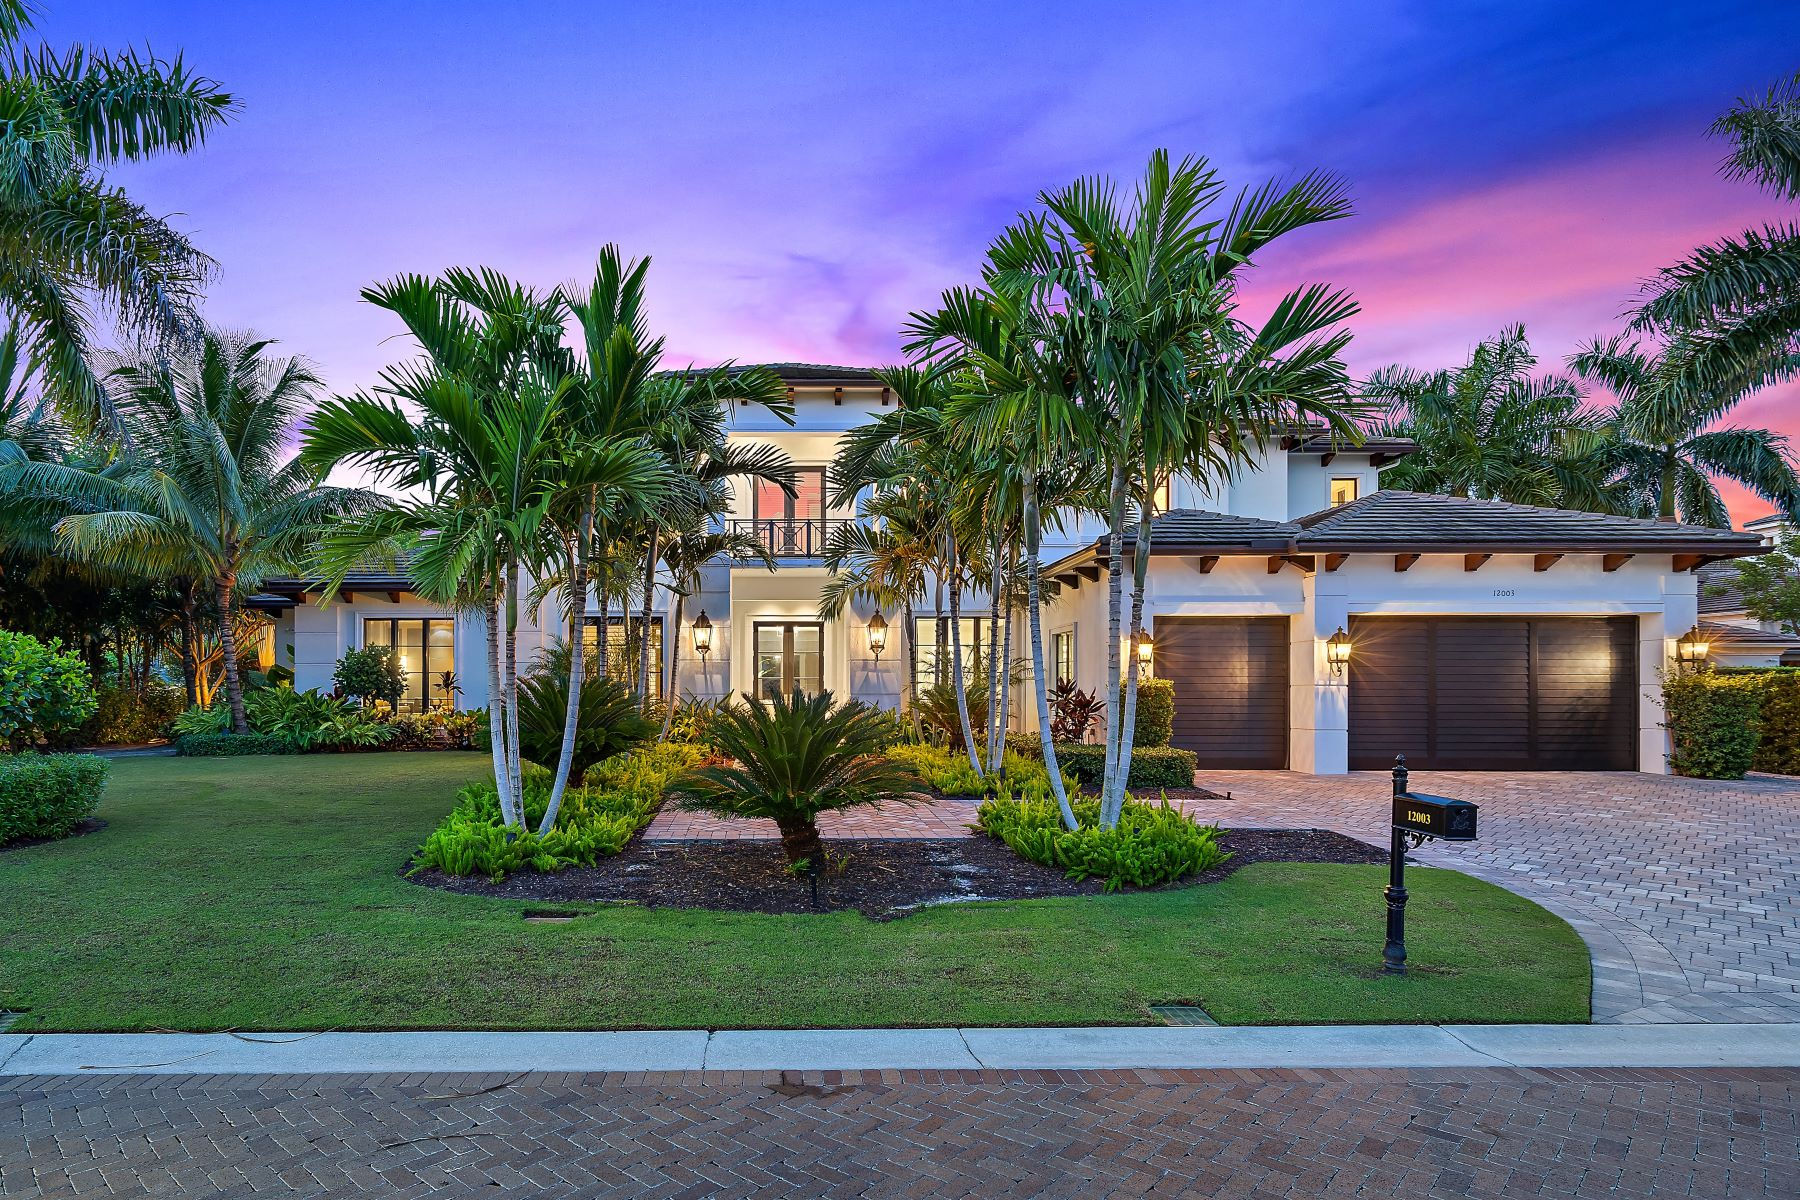 Single Family Homes for Sale at 12003 Cielo Court, Palm Beach Gardens, FL 12003 Cielo Court Palm Beach Gardens, Florida 33418 United States